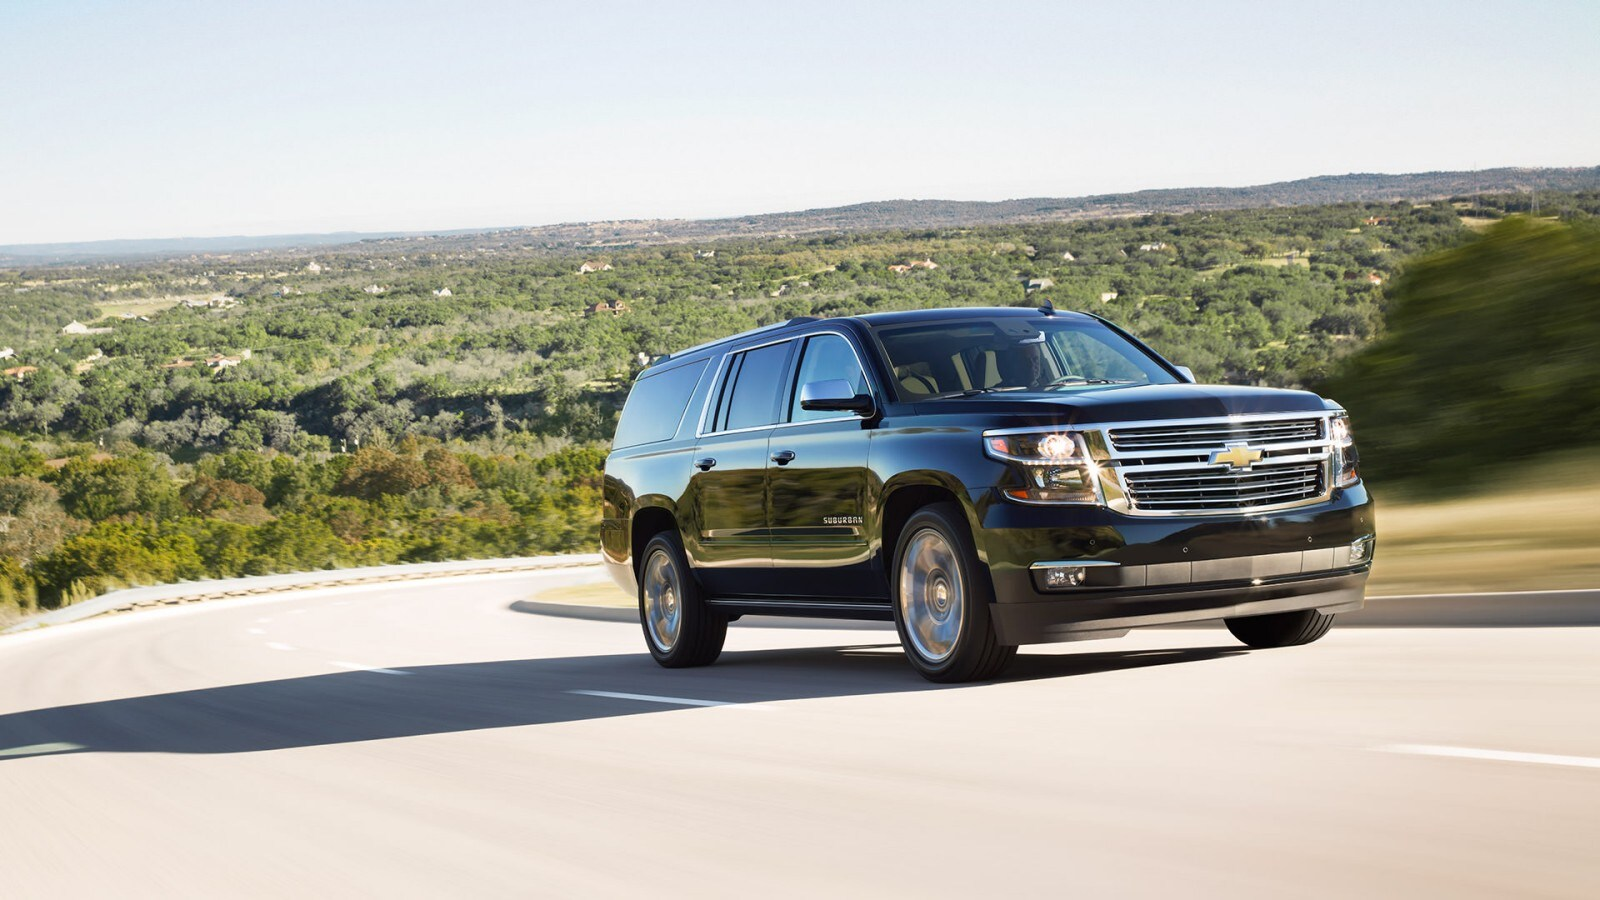 Exceptional 2017 Chevrolet Suburban For Sale In Norman, Oklahoma | Landers Chevrolet Of  Norman